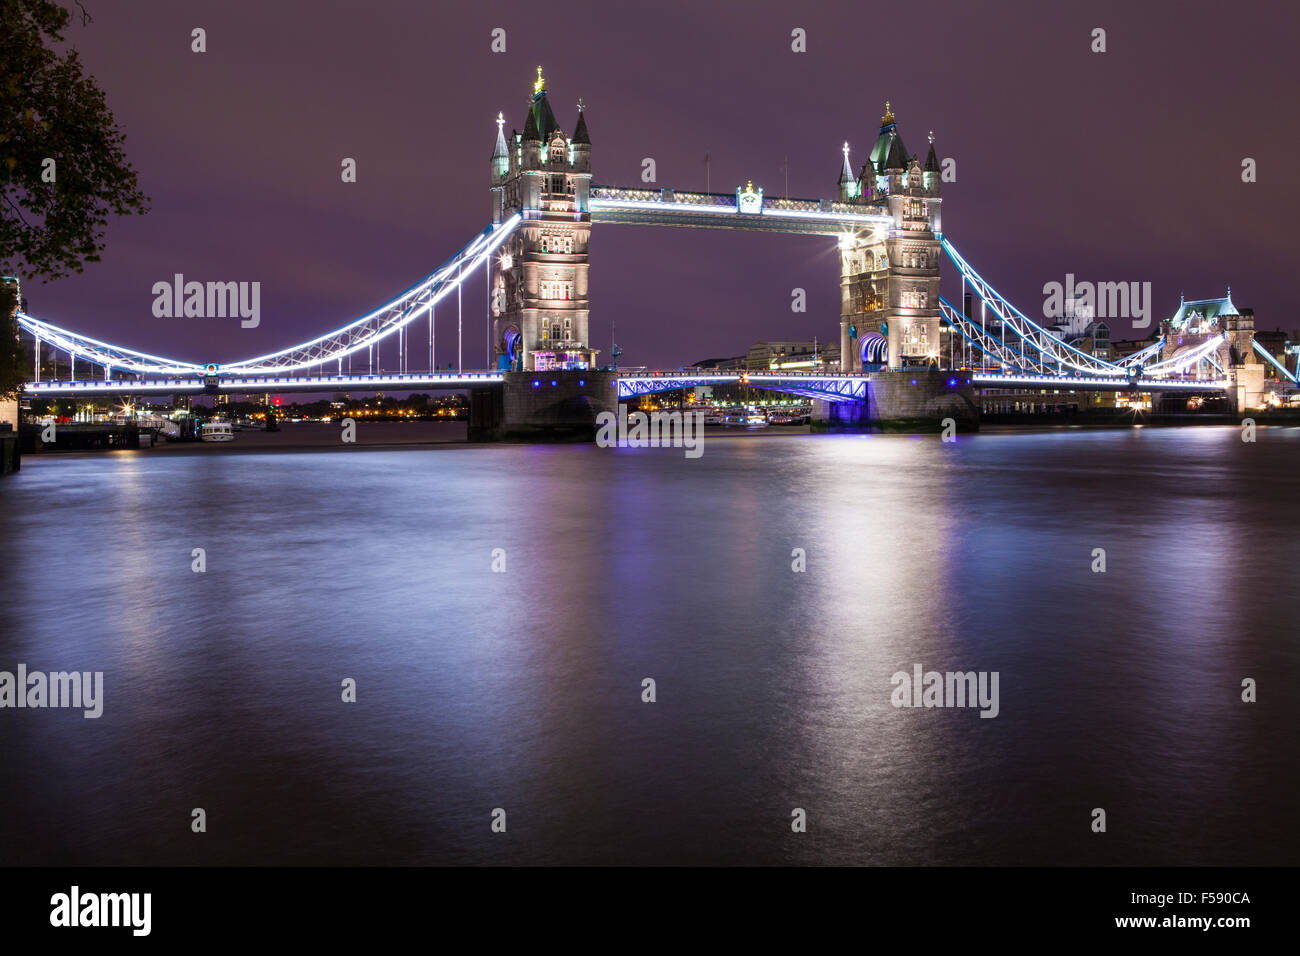 A magnificent night-time view of Tower Bridge and the River Thames in London. - Stock Image